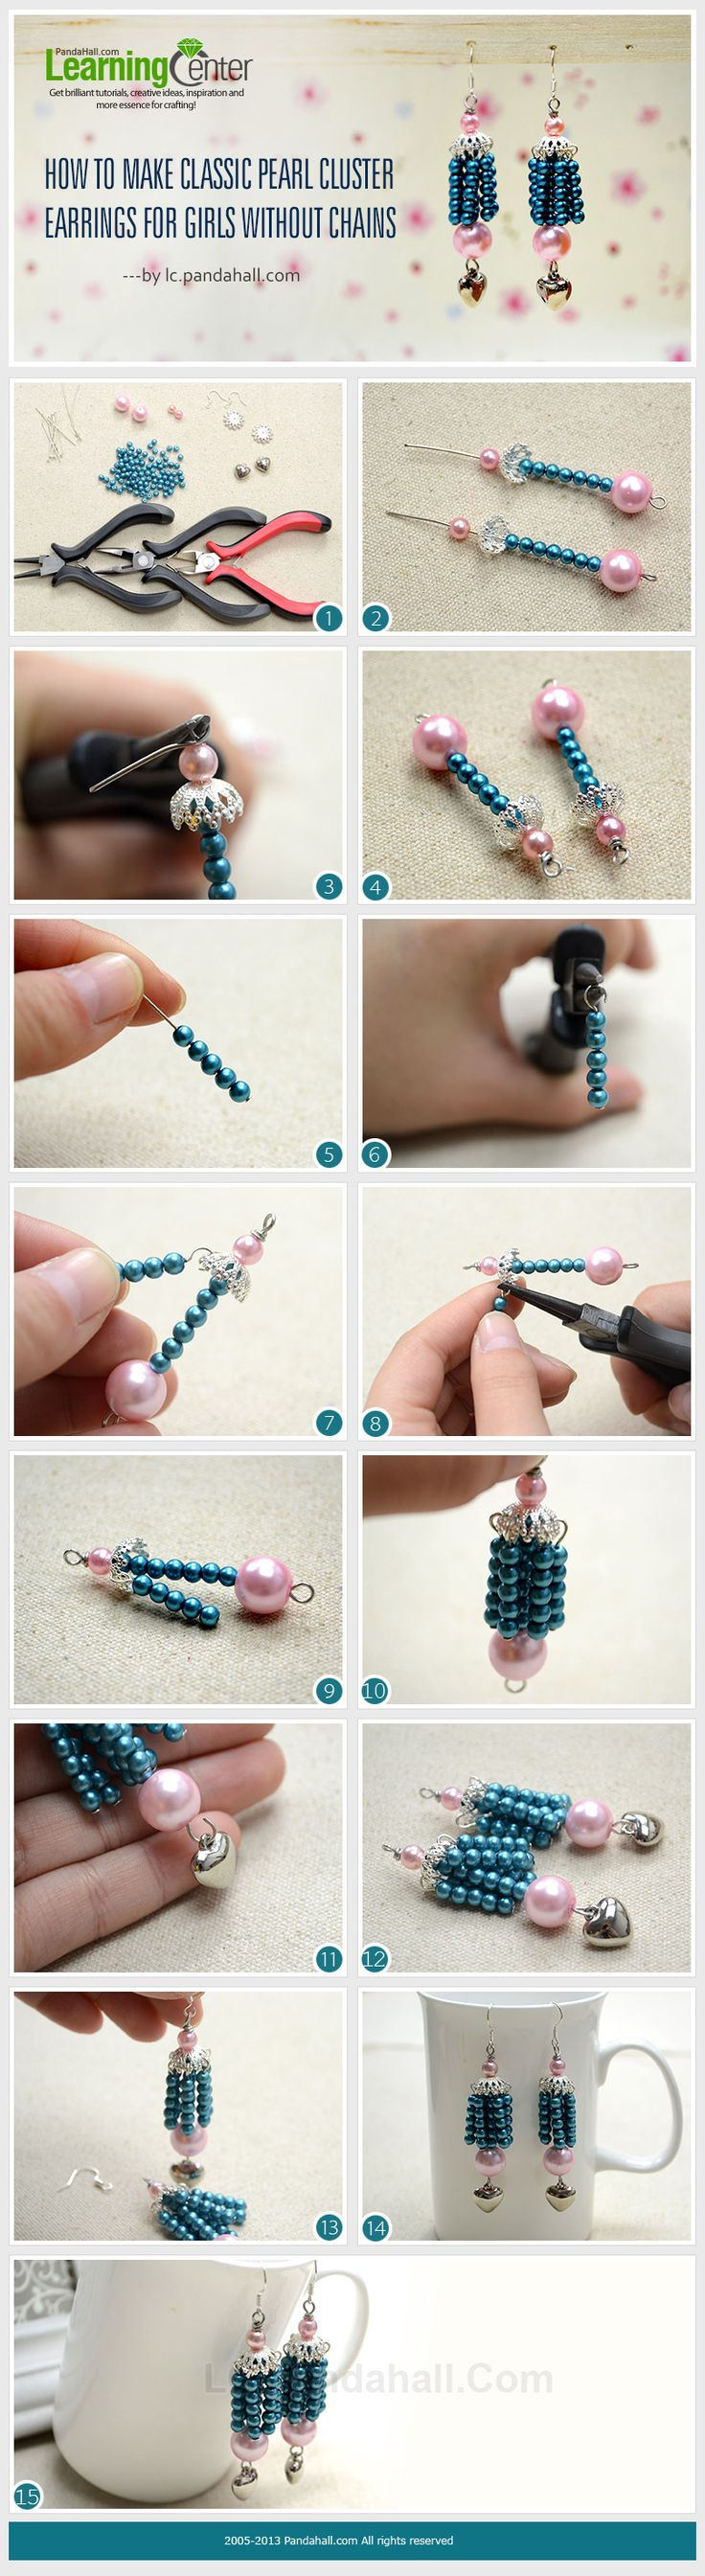 How to Make Classic Pearl Cluster Earrings for Girls without Chains